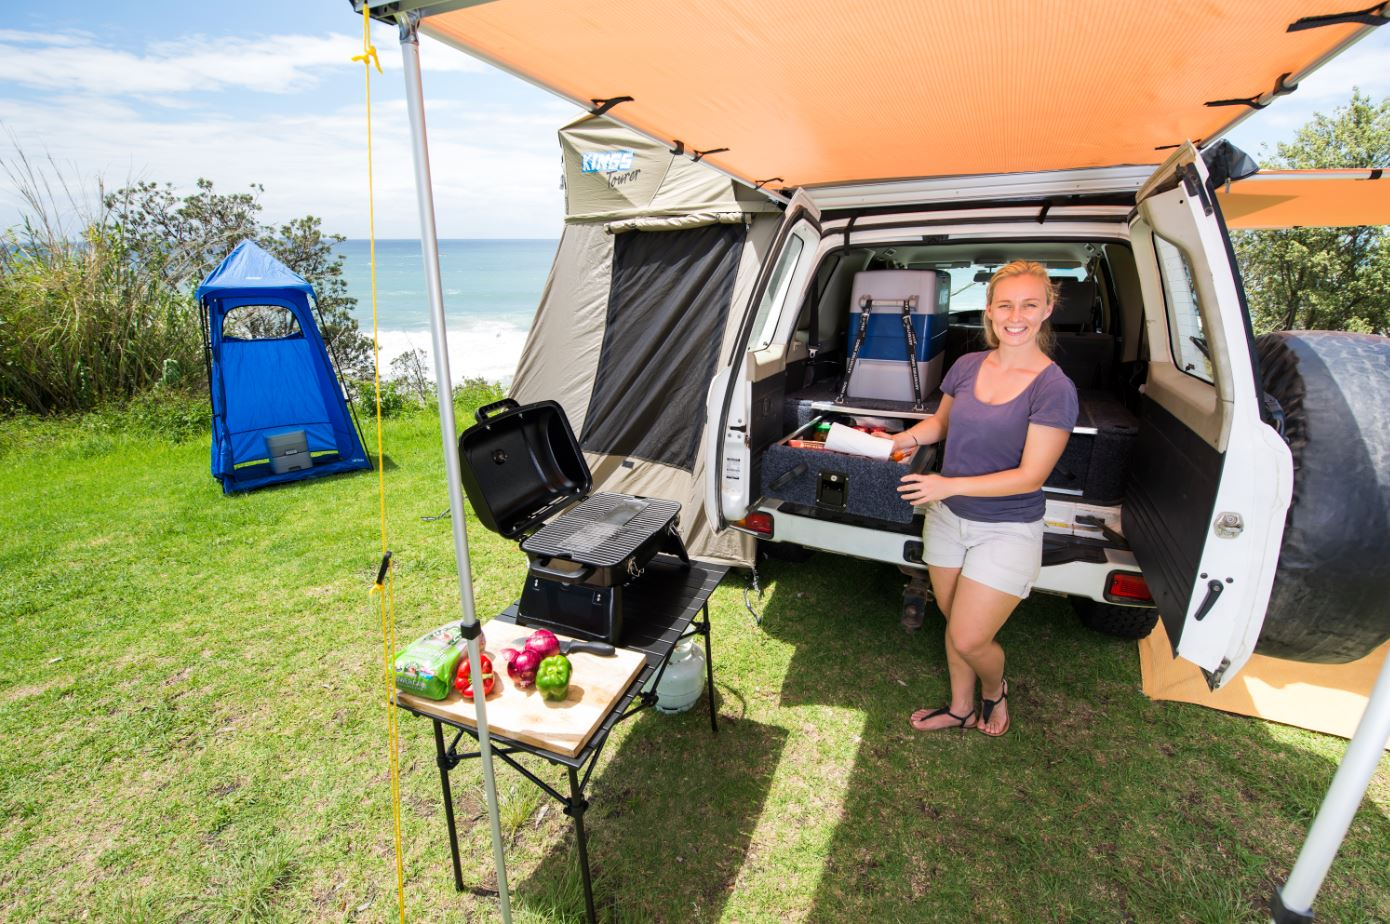 Are Camping Solar Panels Still Useful During Winter? - image Capture-140 on https://www.4wdsupacentre.com.au/news